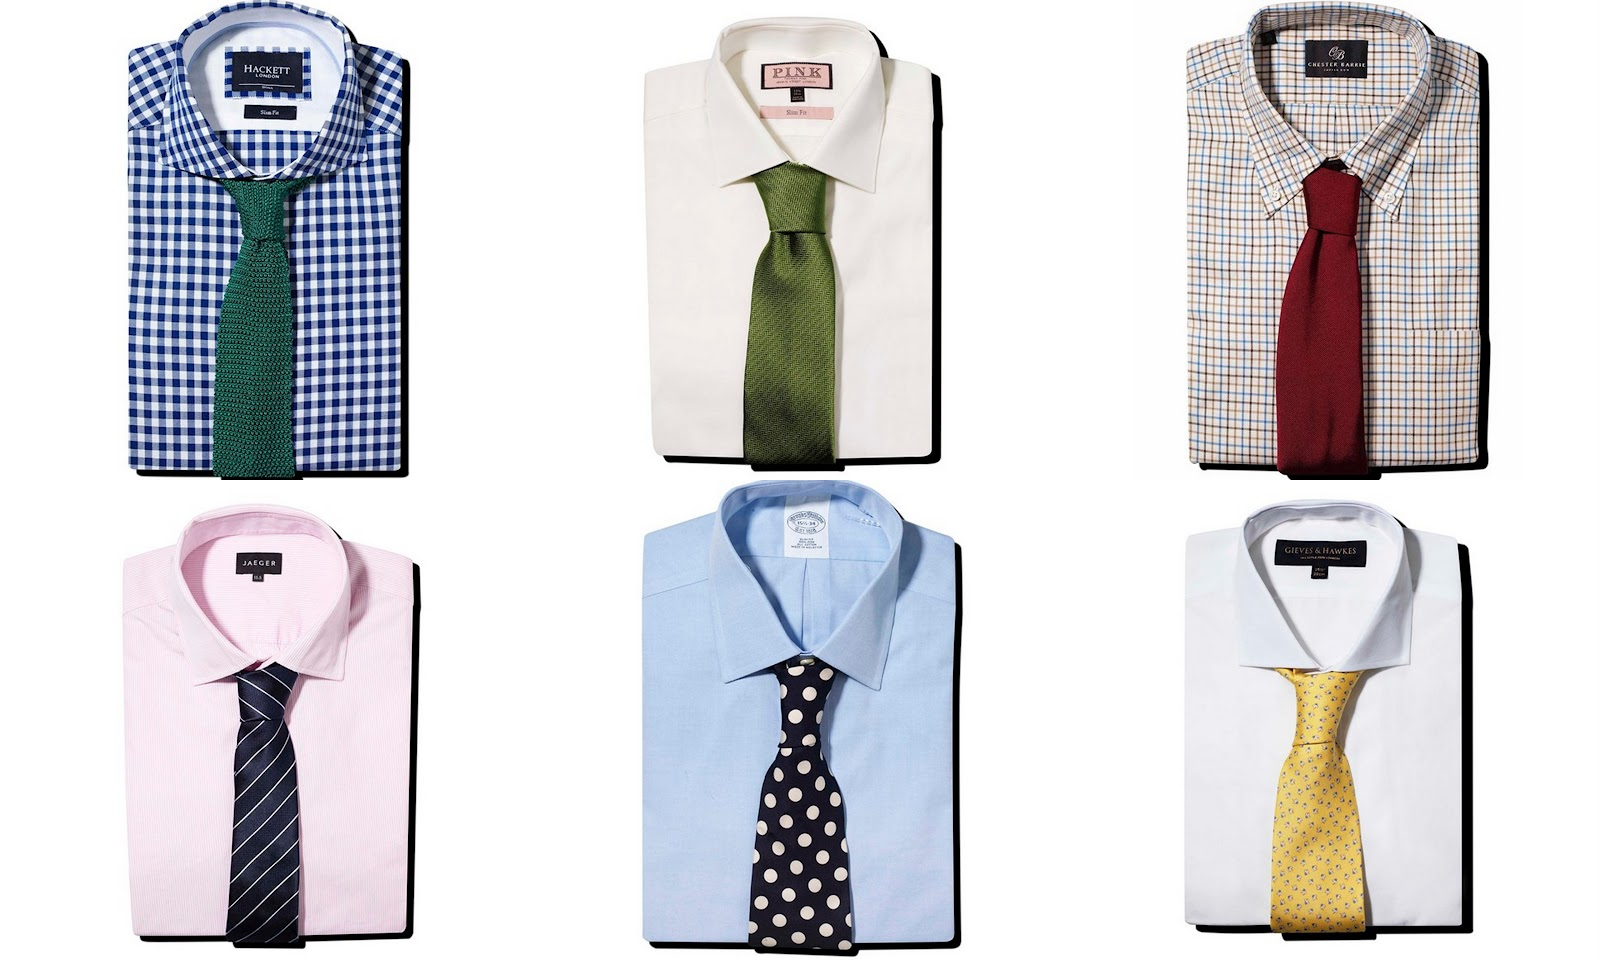 Artistique swagger july 2012 for Matching ties with shirts